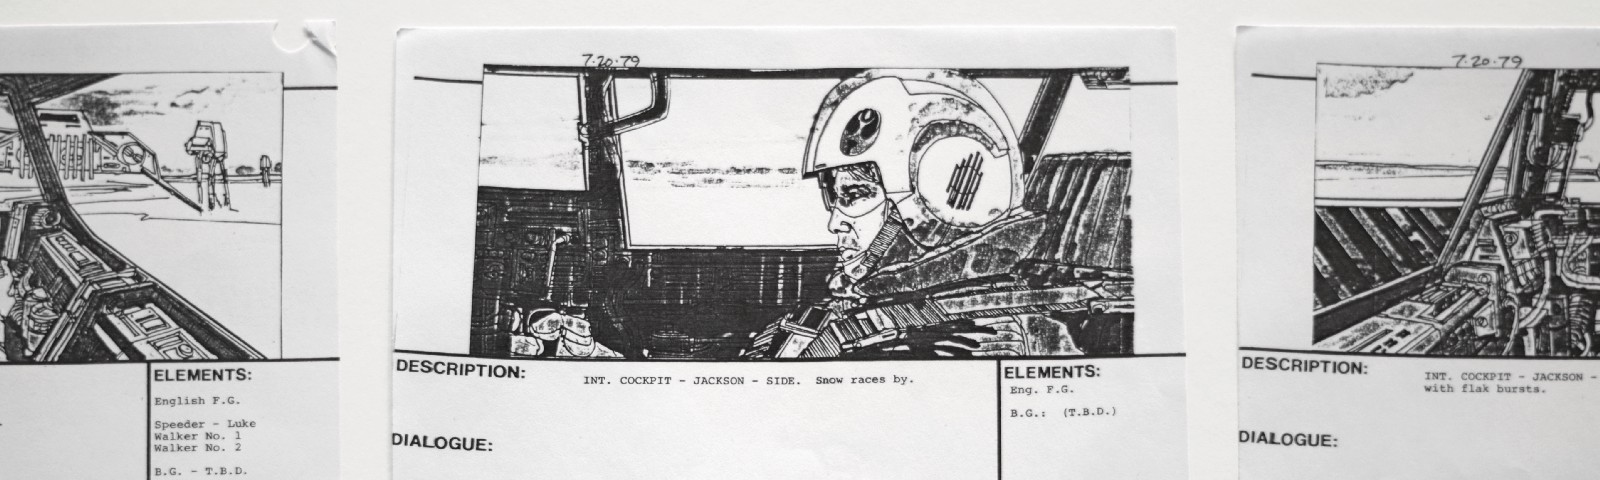 Storyboards for a film, with a sketch of a man in a helmet sitting in the cockpit of a plane.